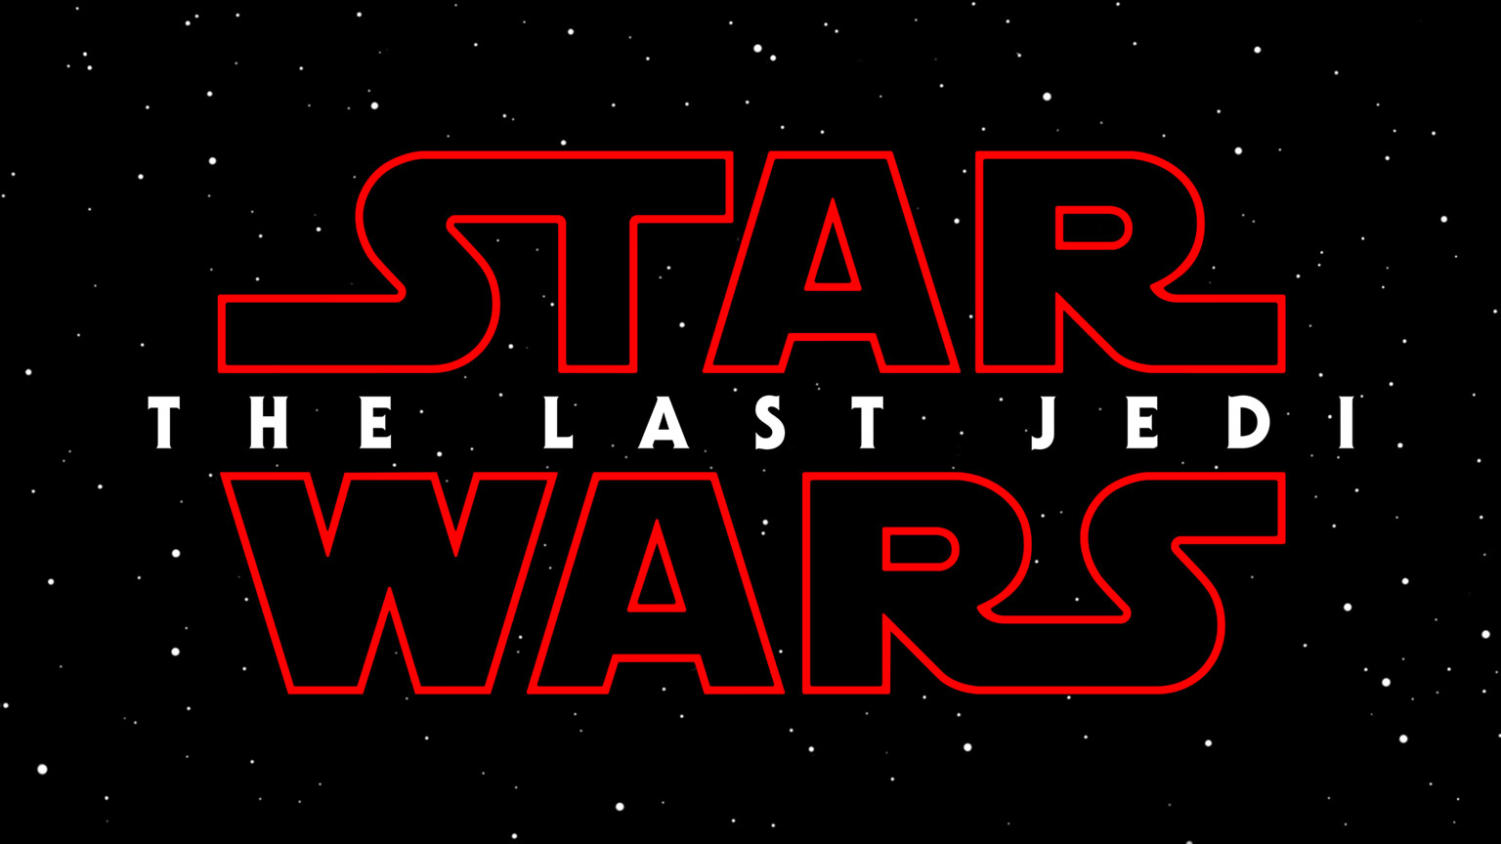 Star Wars Episode VIII: The Last Jedi Character Posters